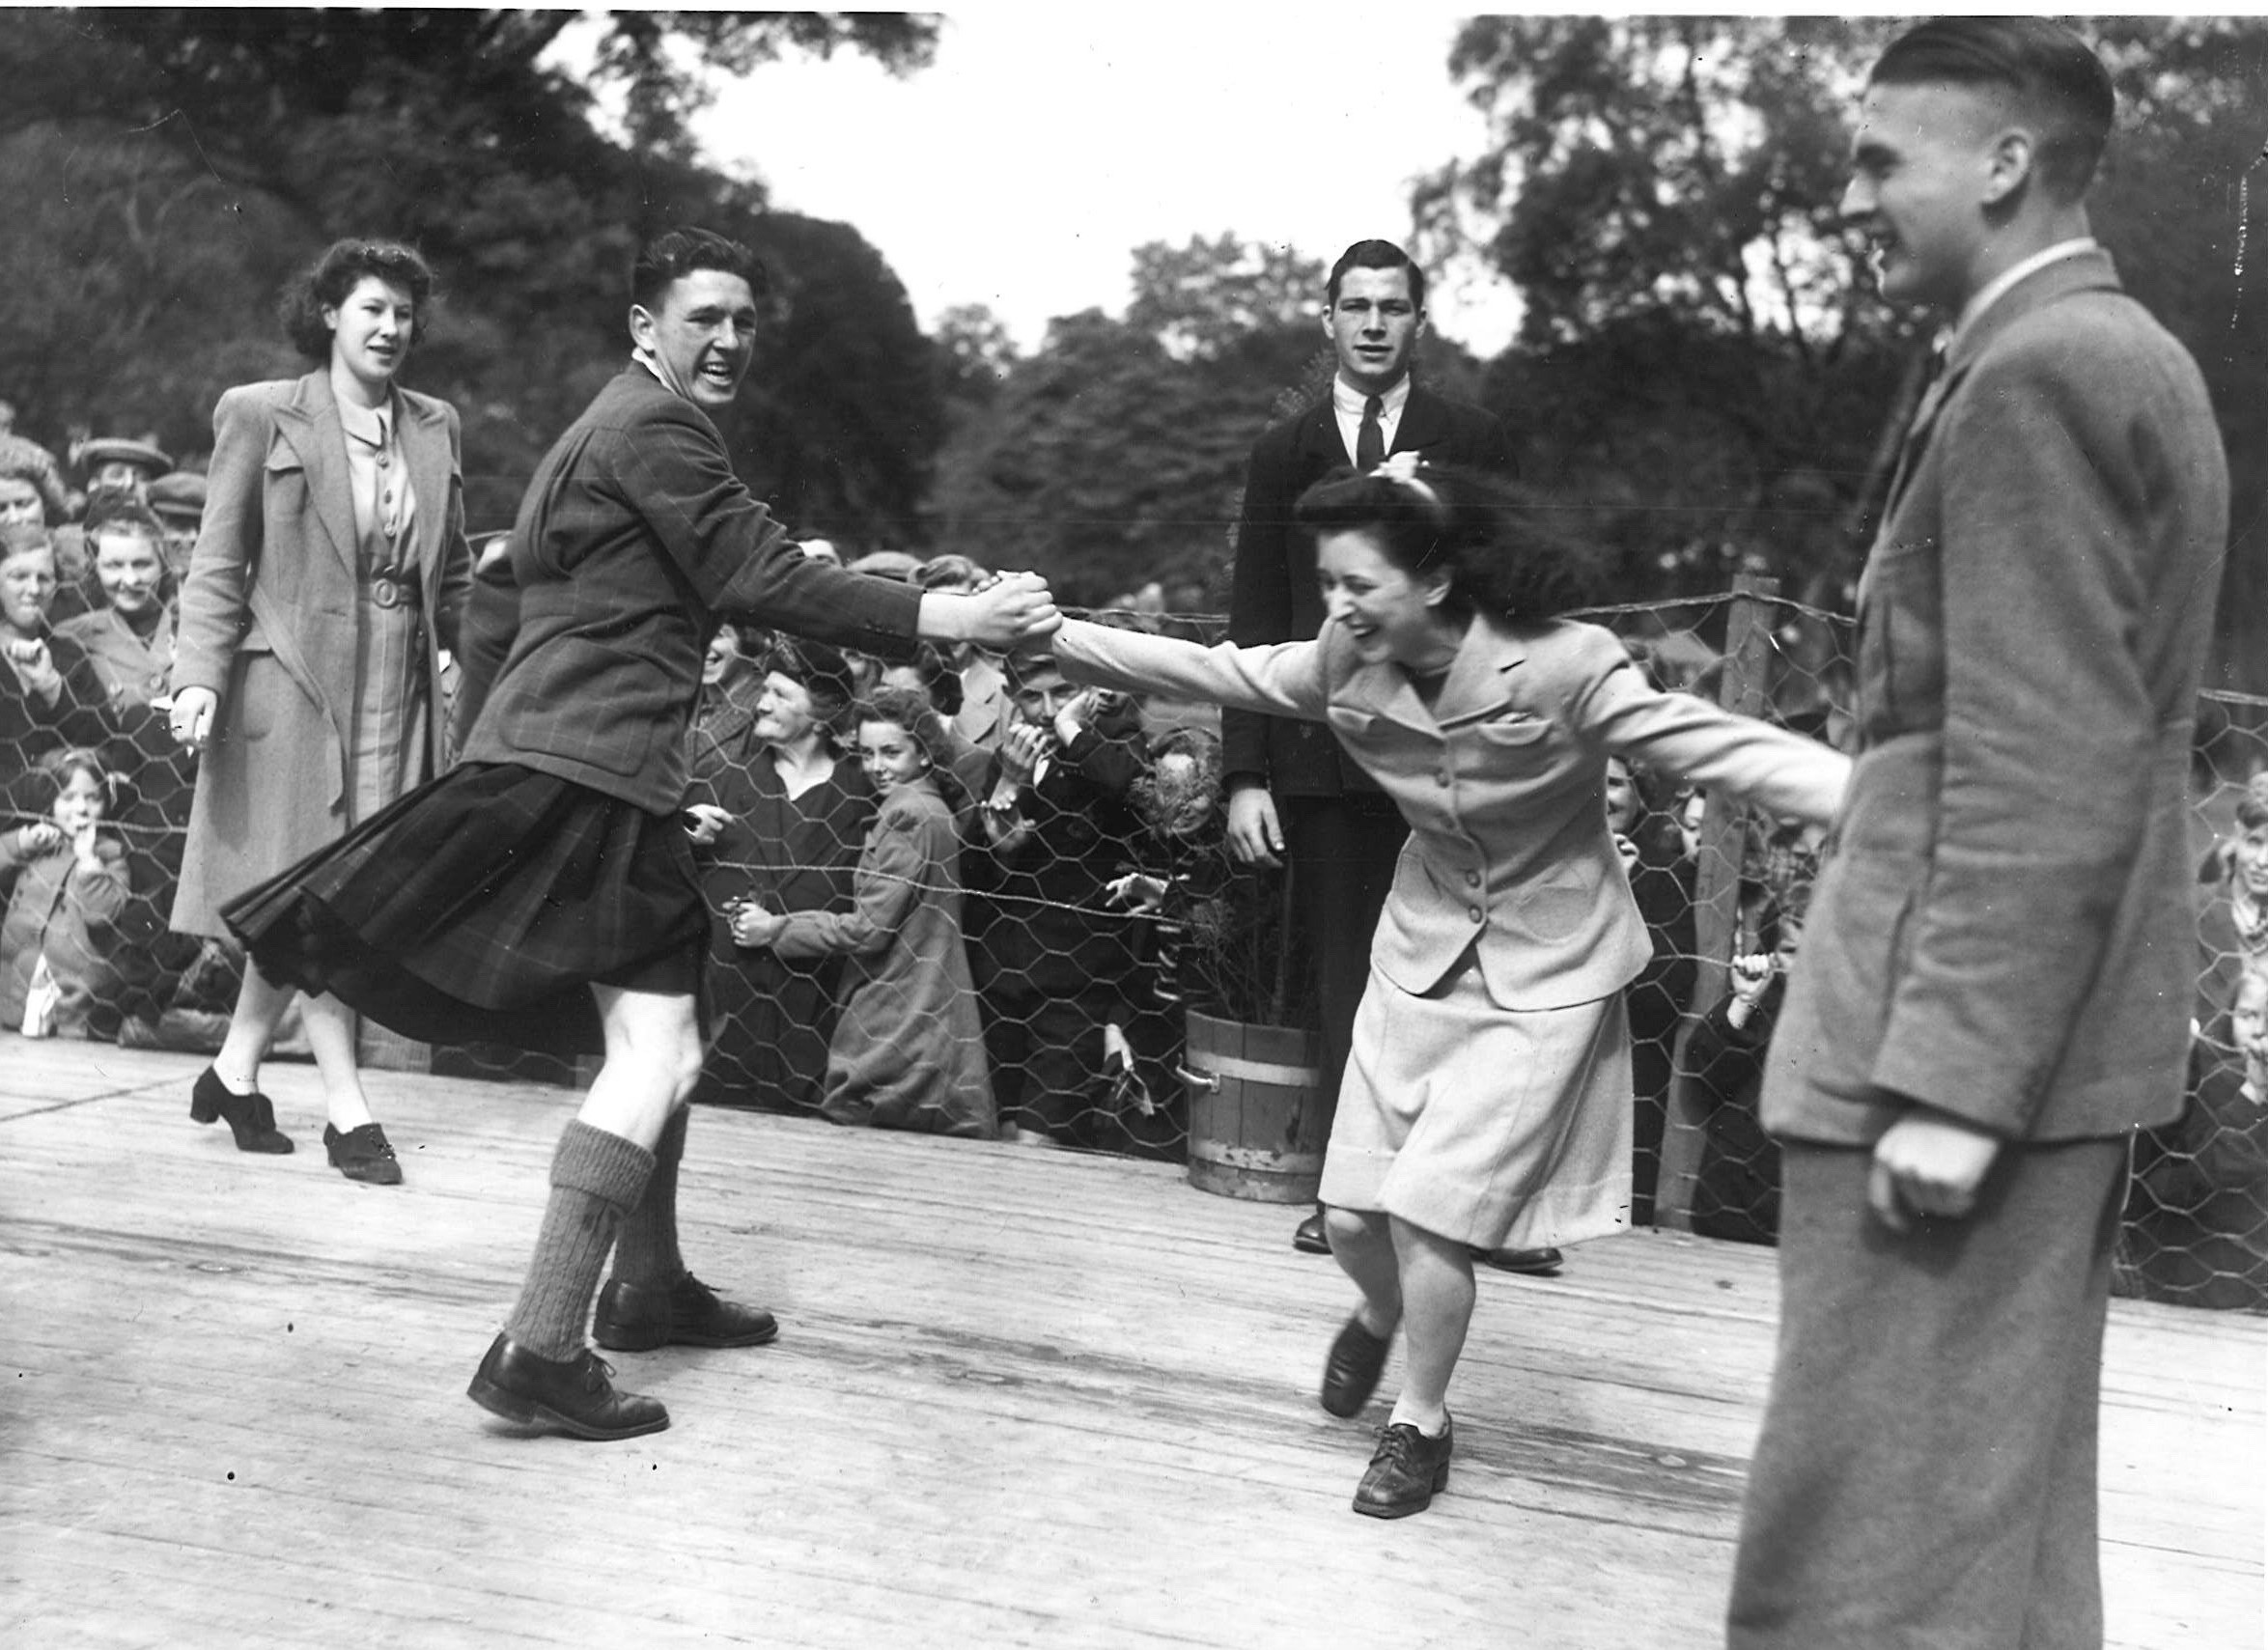 Stay at Home Holidays. Events were staged to help distract war woes. Fun during the eightsome reel at Hazlehead park summer 1942